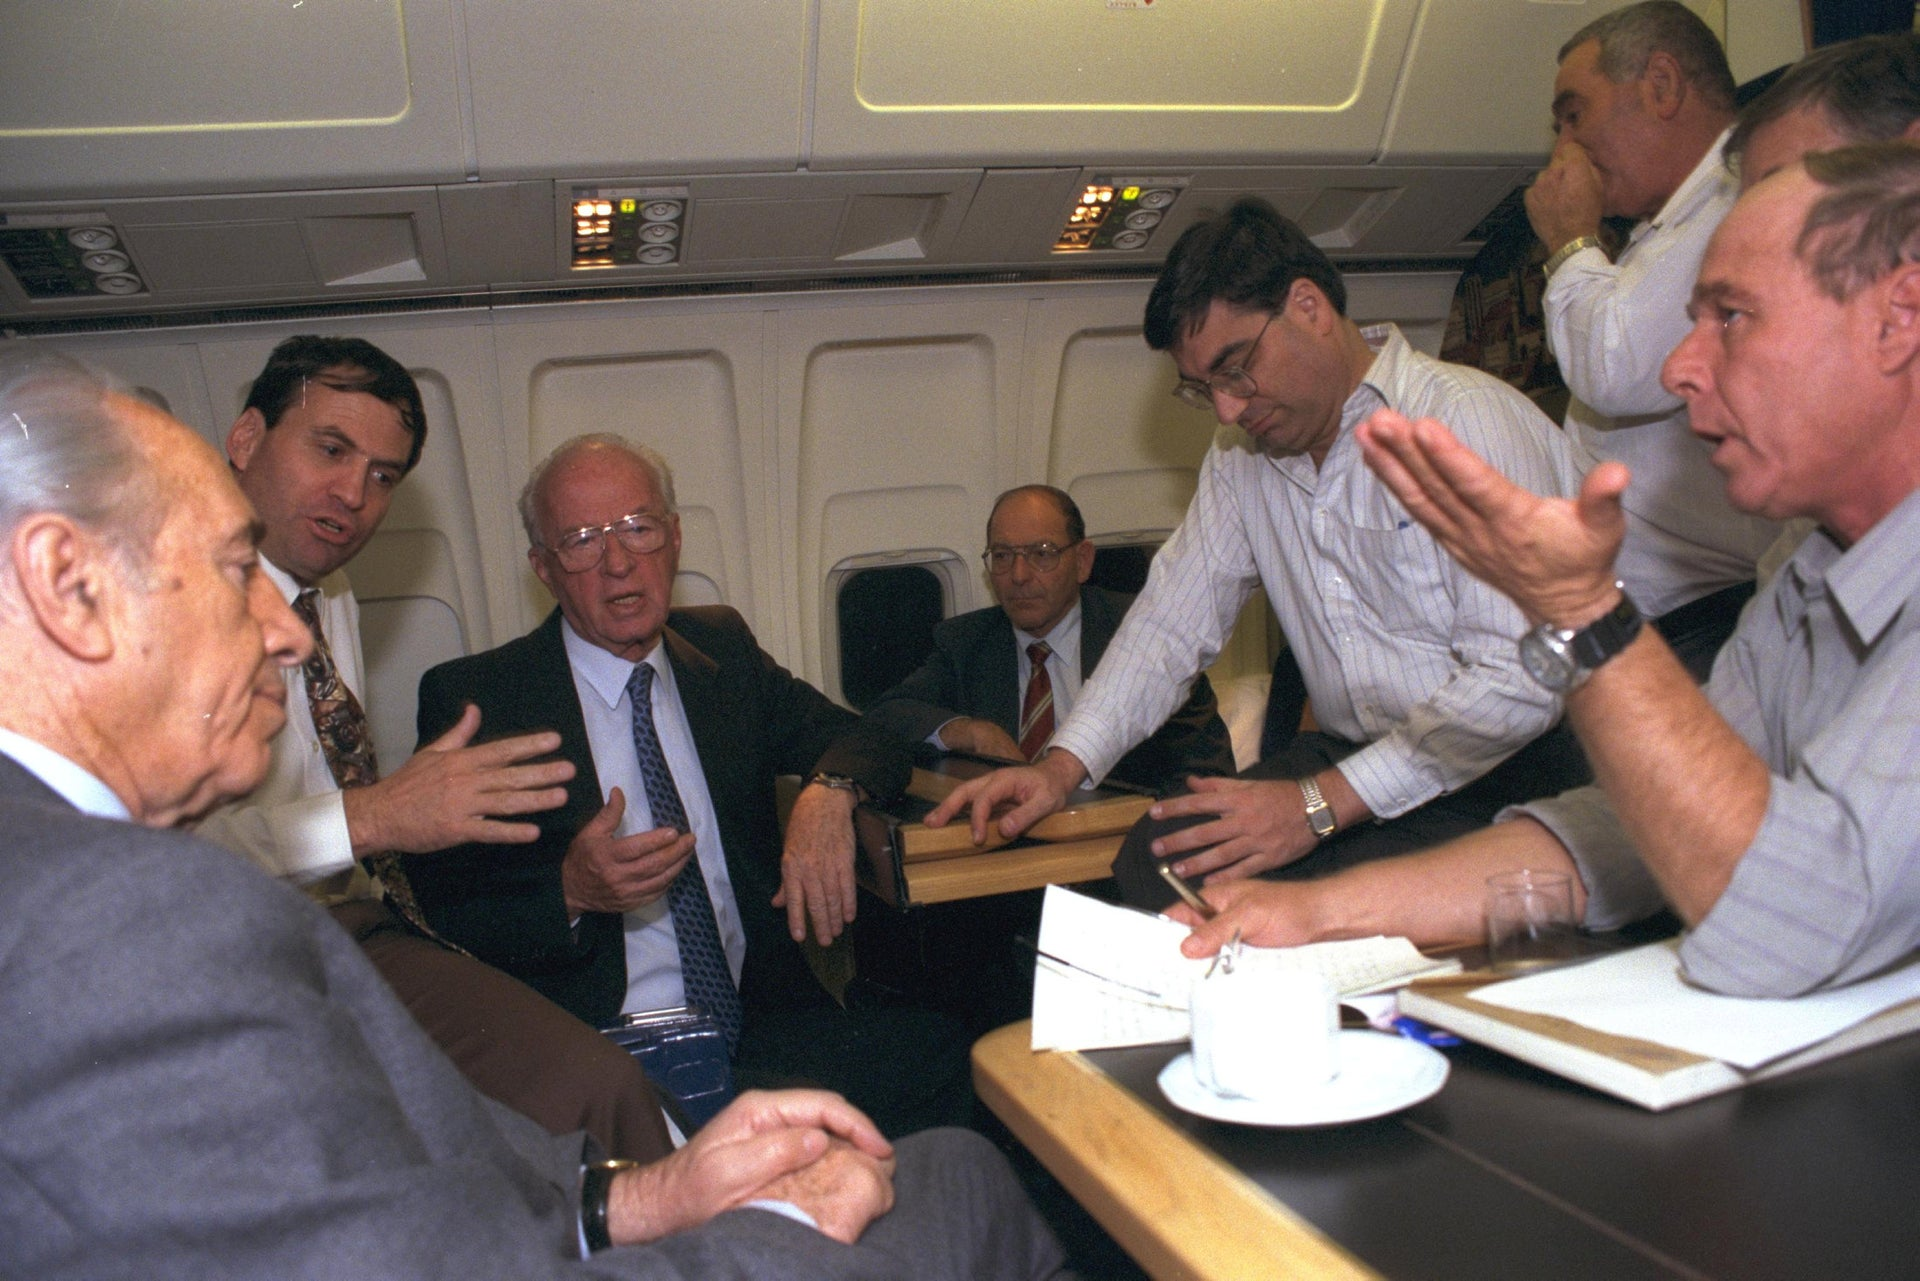 From left to right: Shimon Peres, Uzi Dayan, Yitzhak Rabin, Yoel Singer, and Ilan Biran en route to Washington for the signing of Oslo II in 1995.